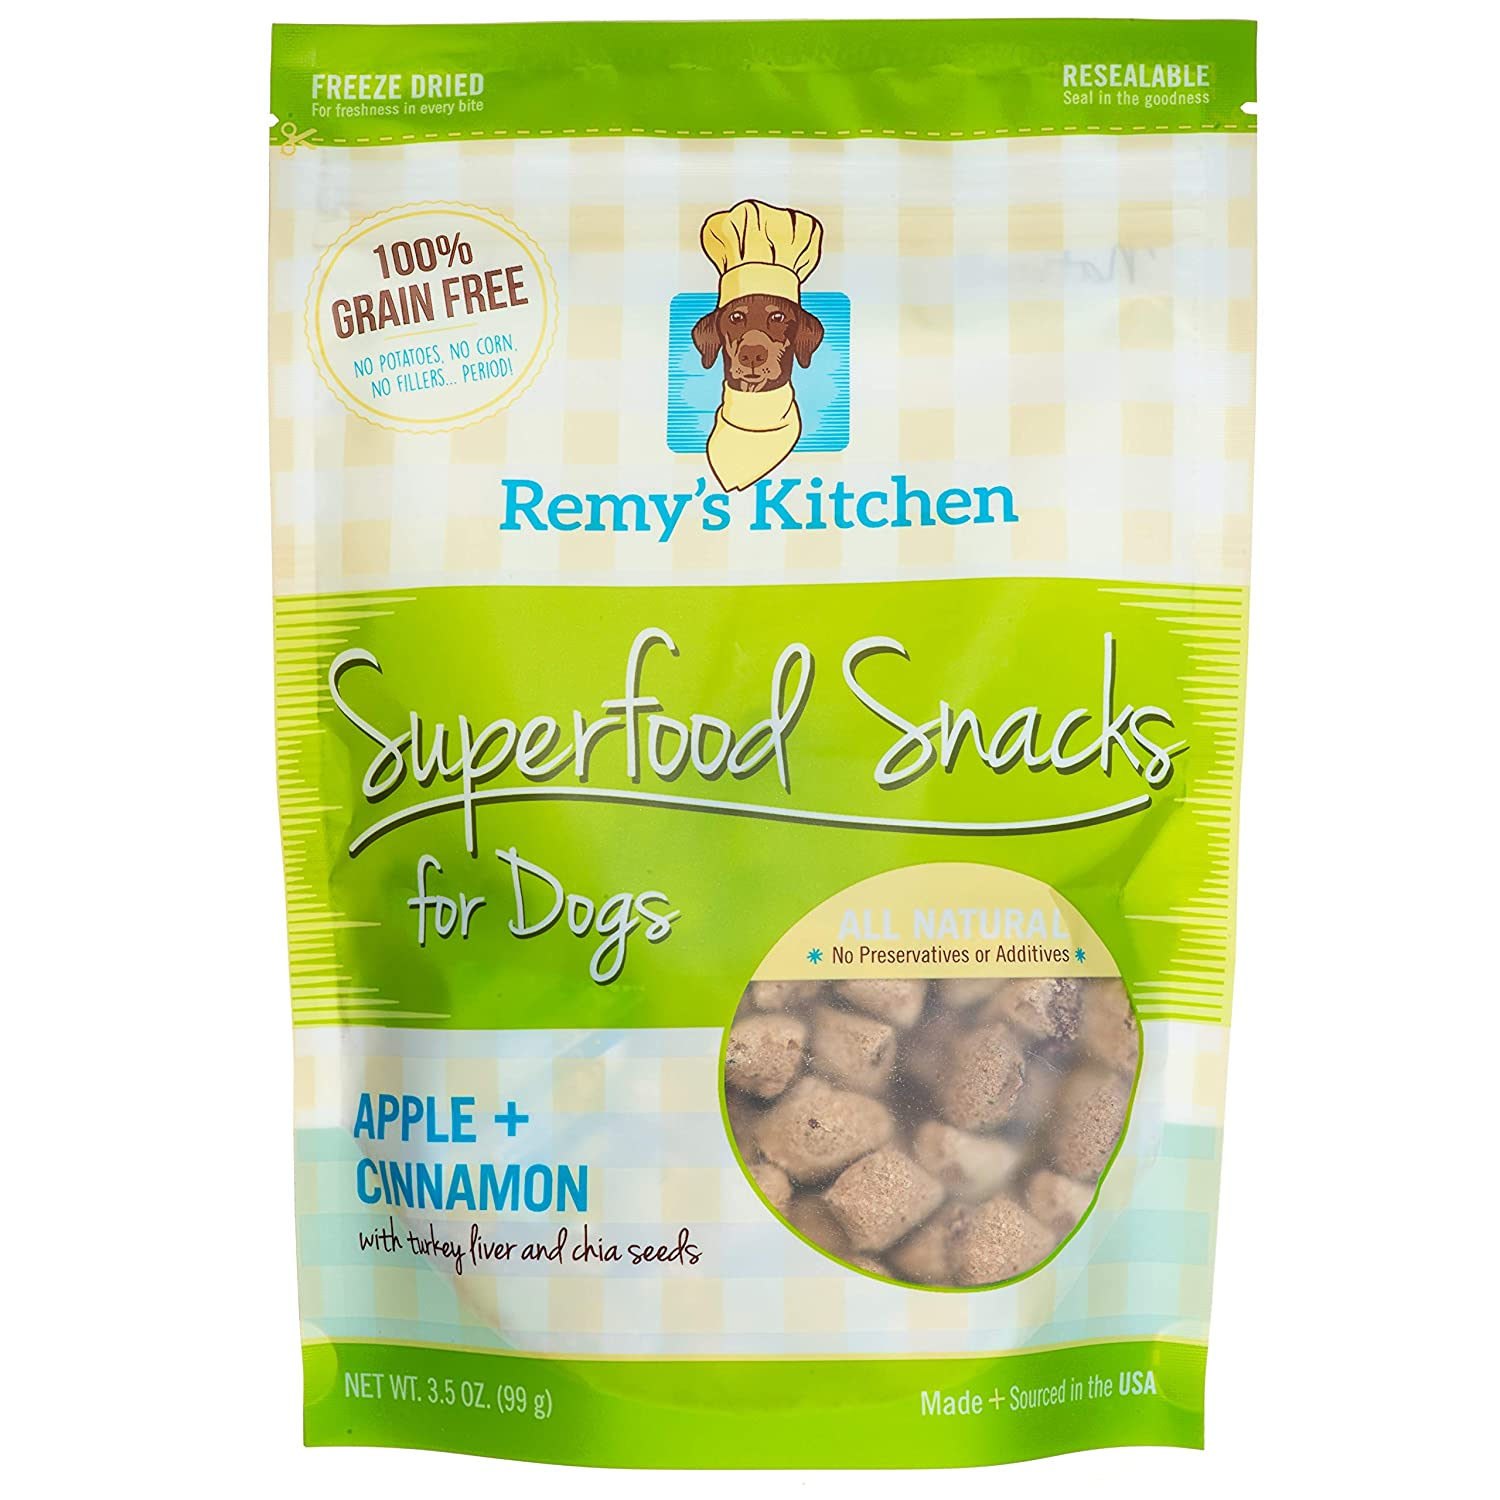 Remy S Kitchen Superfood Snacks For Dogs Apple Cinnamon